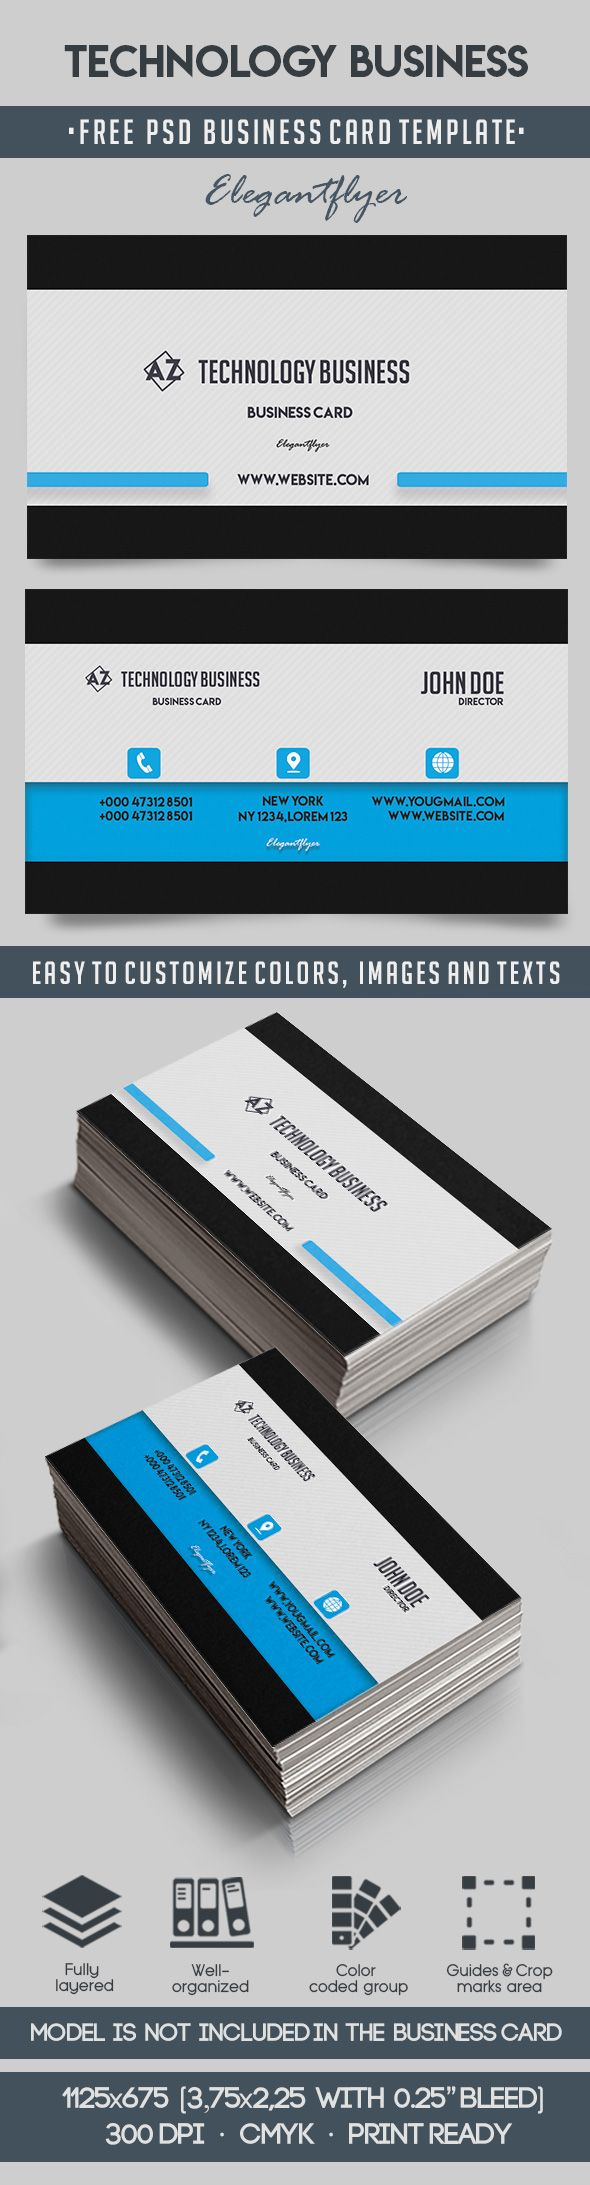 Technology Business Free Business Card Templates PSD By - Technology business card templates